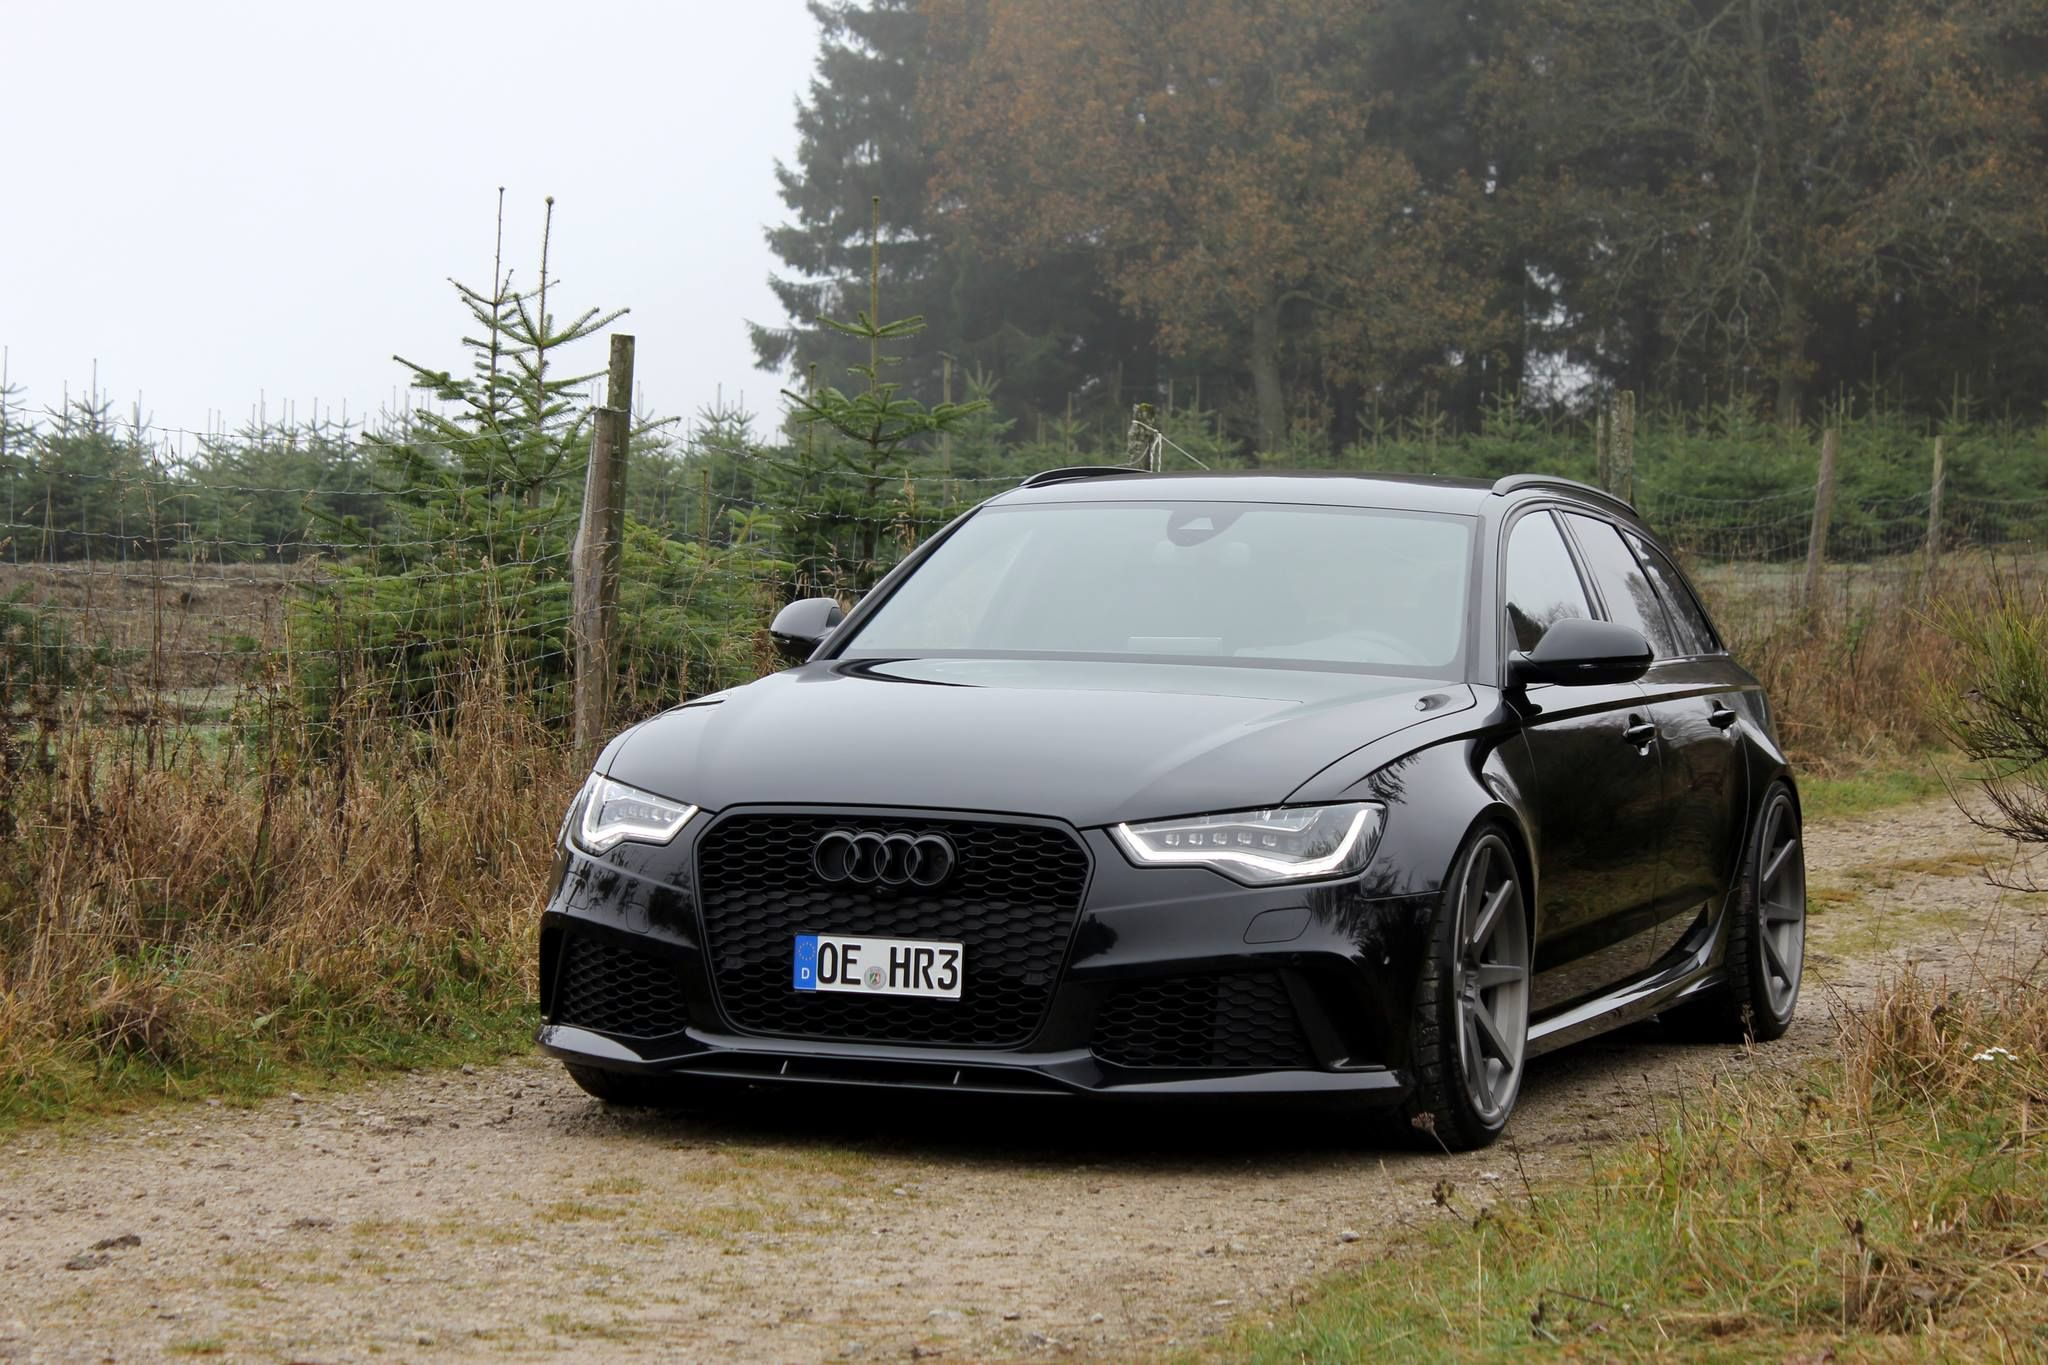 H&R RS6 Avant. | Cars | Pinterest | Audi rs6, Cars and Audi a6 Black Audi A Rs Style on 2007 audi rs, audi tt coupe, audi a5 rs, audi s rs, audi q7 rs, audi quattro rs, 2005 audi rs, audi a7 rs, audi rs 10, audi rs6 avant usa, audi q5 rs, audi a8 rs, audi a4 wagon, 2001 audi rs, audi estate v1.0, audi tt rs, audi r8 rs, audi rs v10, audi a3 rs, audi rs 5 coupe,